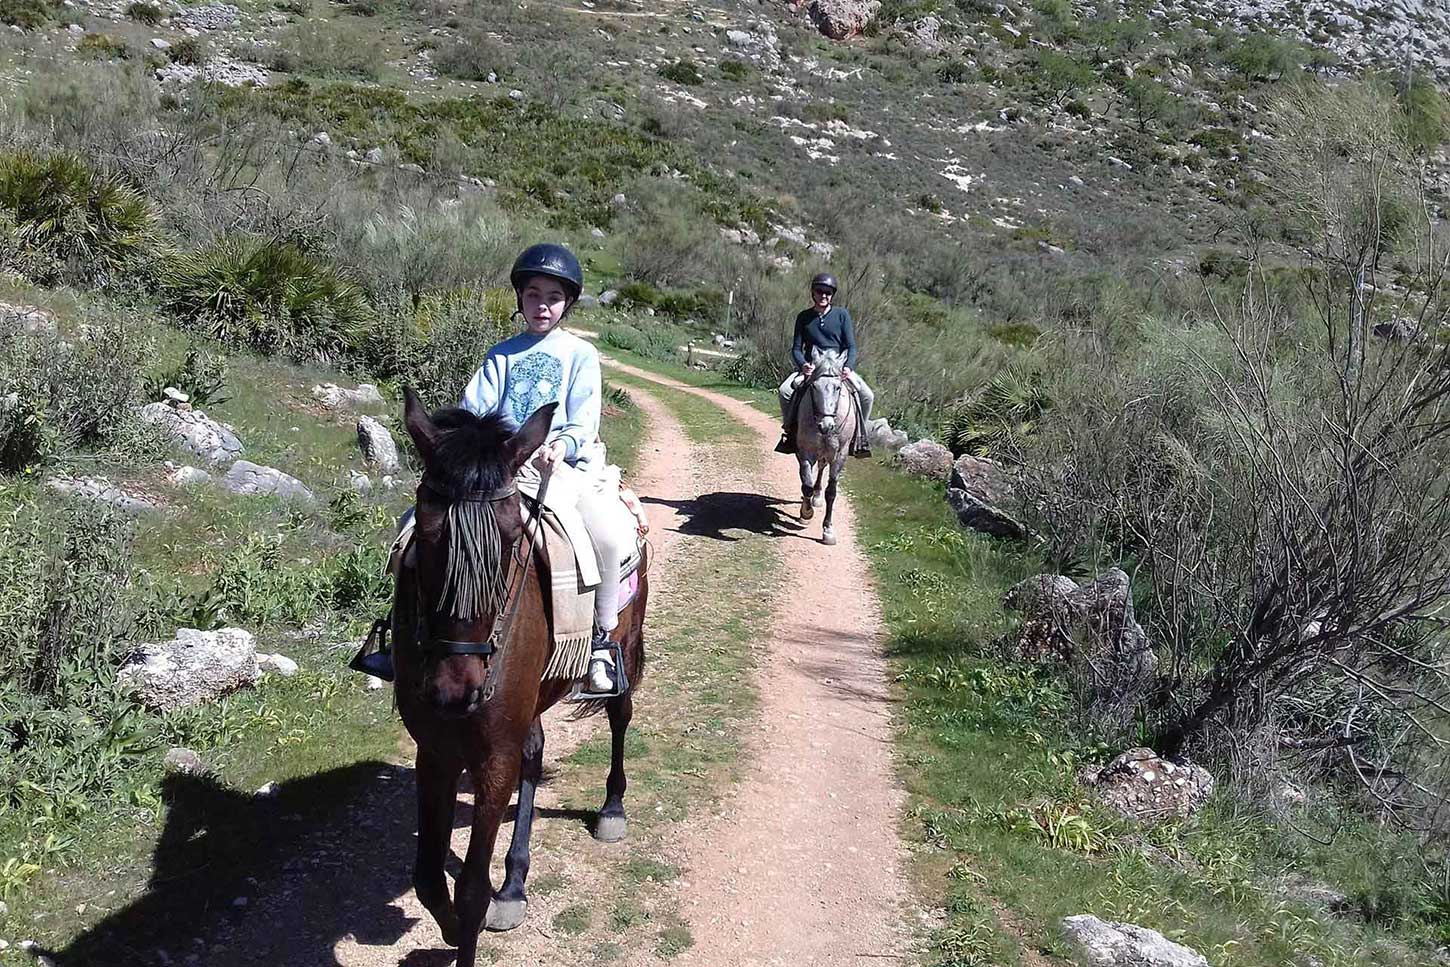 Horse Riding Spain - Horse riding Holiday Tripadvisor review